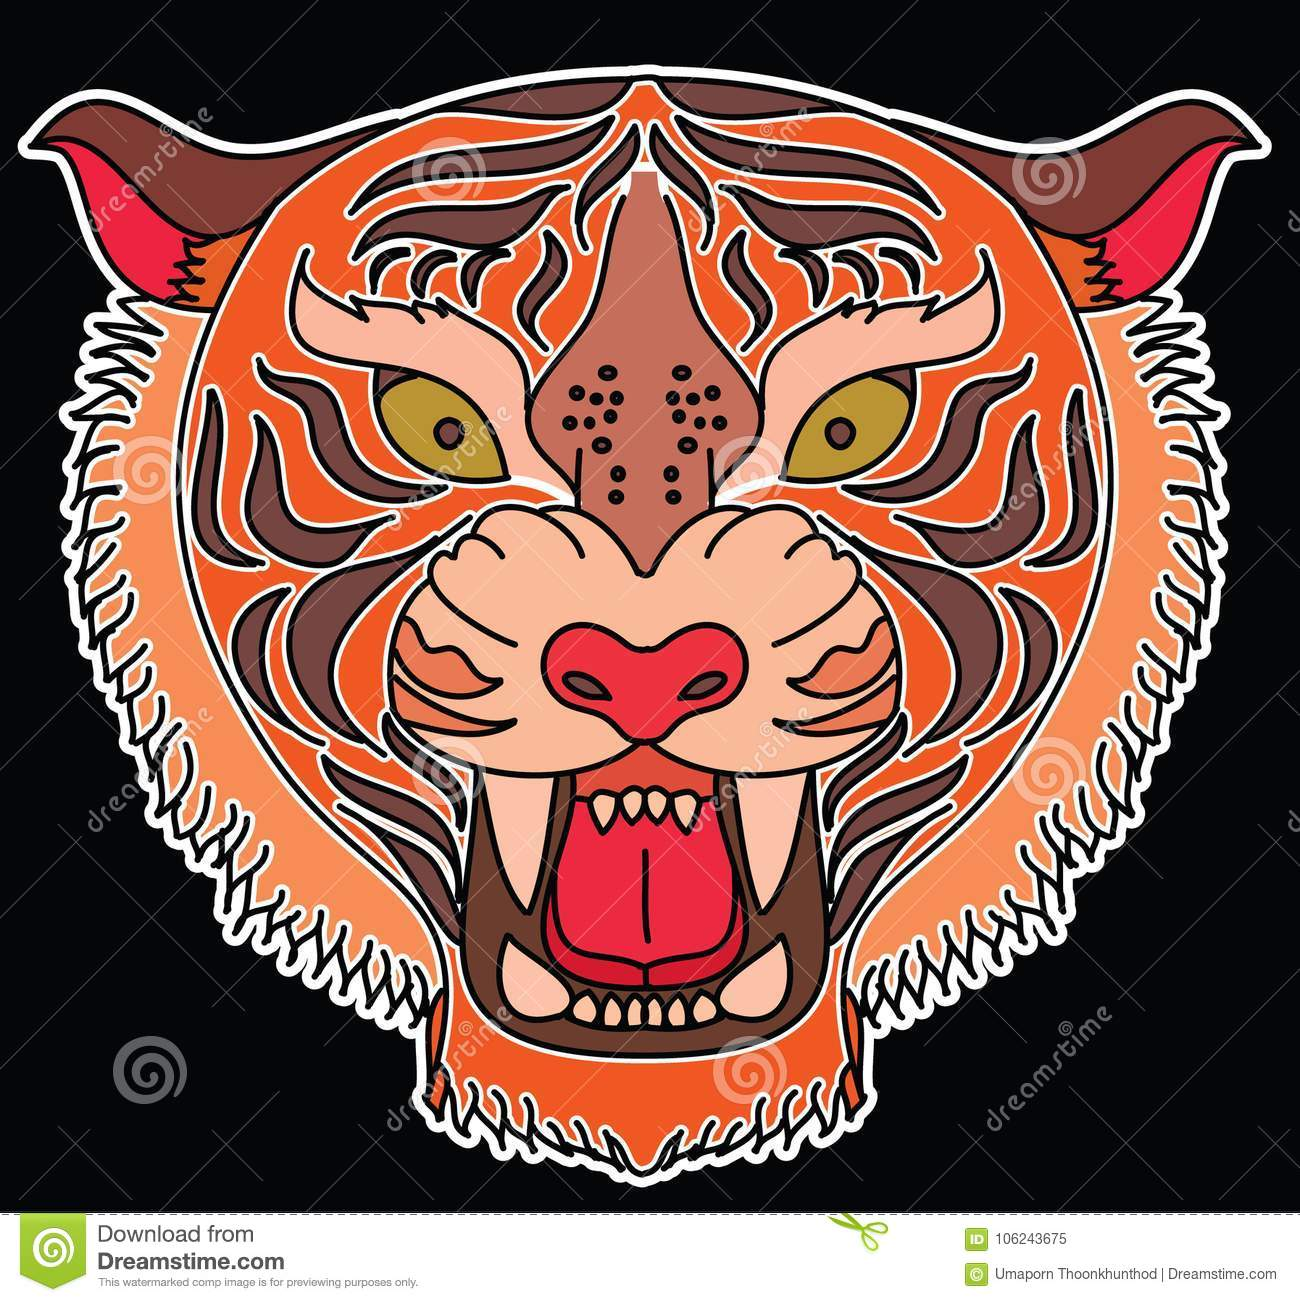 4ffc9b04e Doodle Japanese tiger head vector on black background.Drawing Japanese tiger  head for tattoo or sticker style.